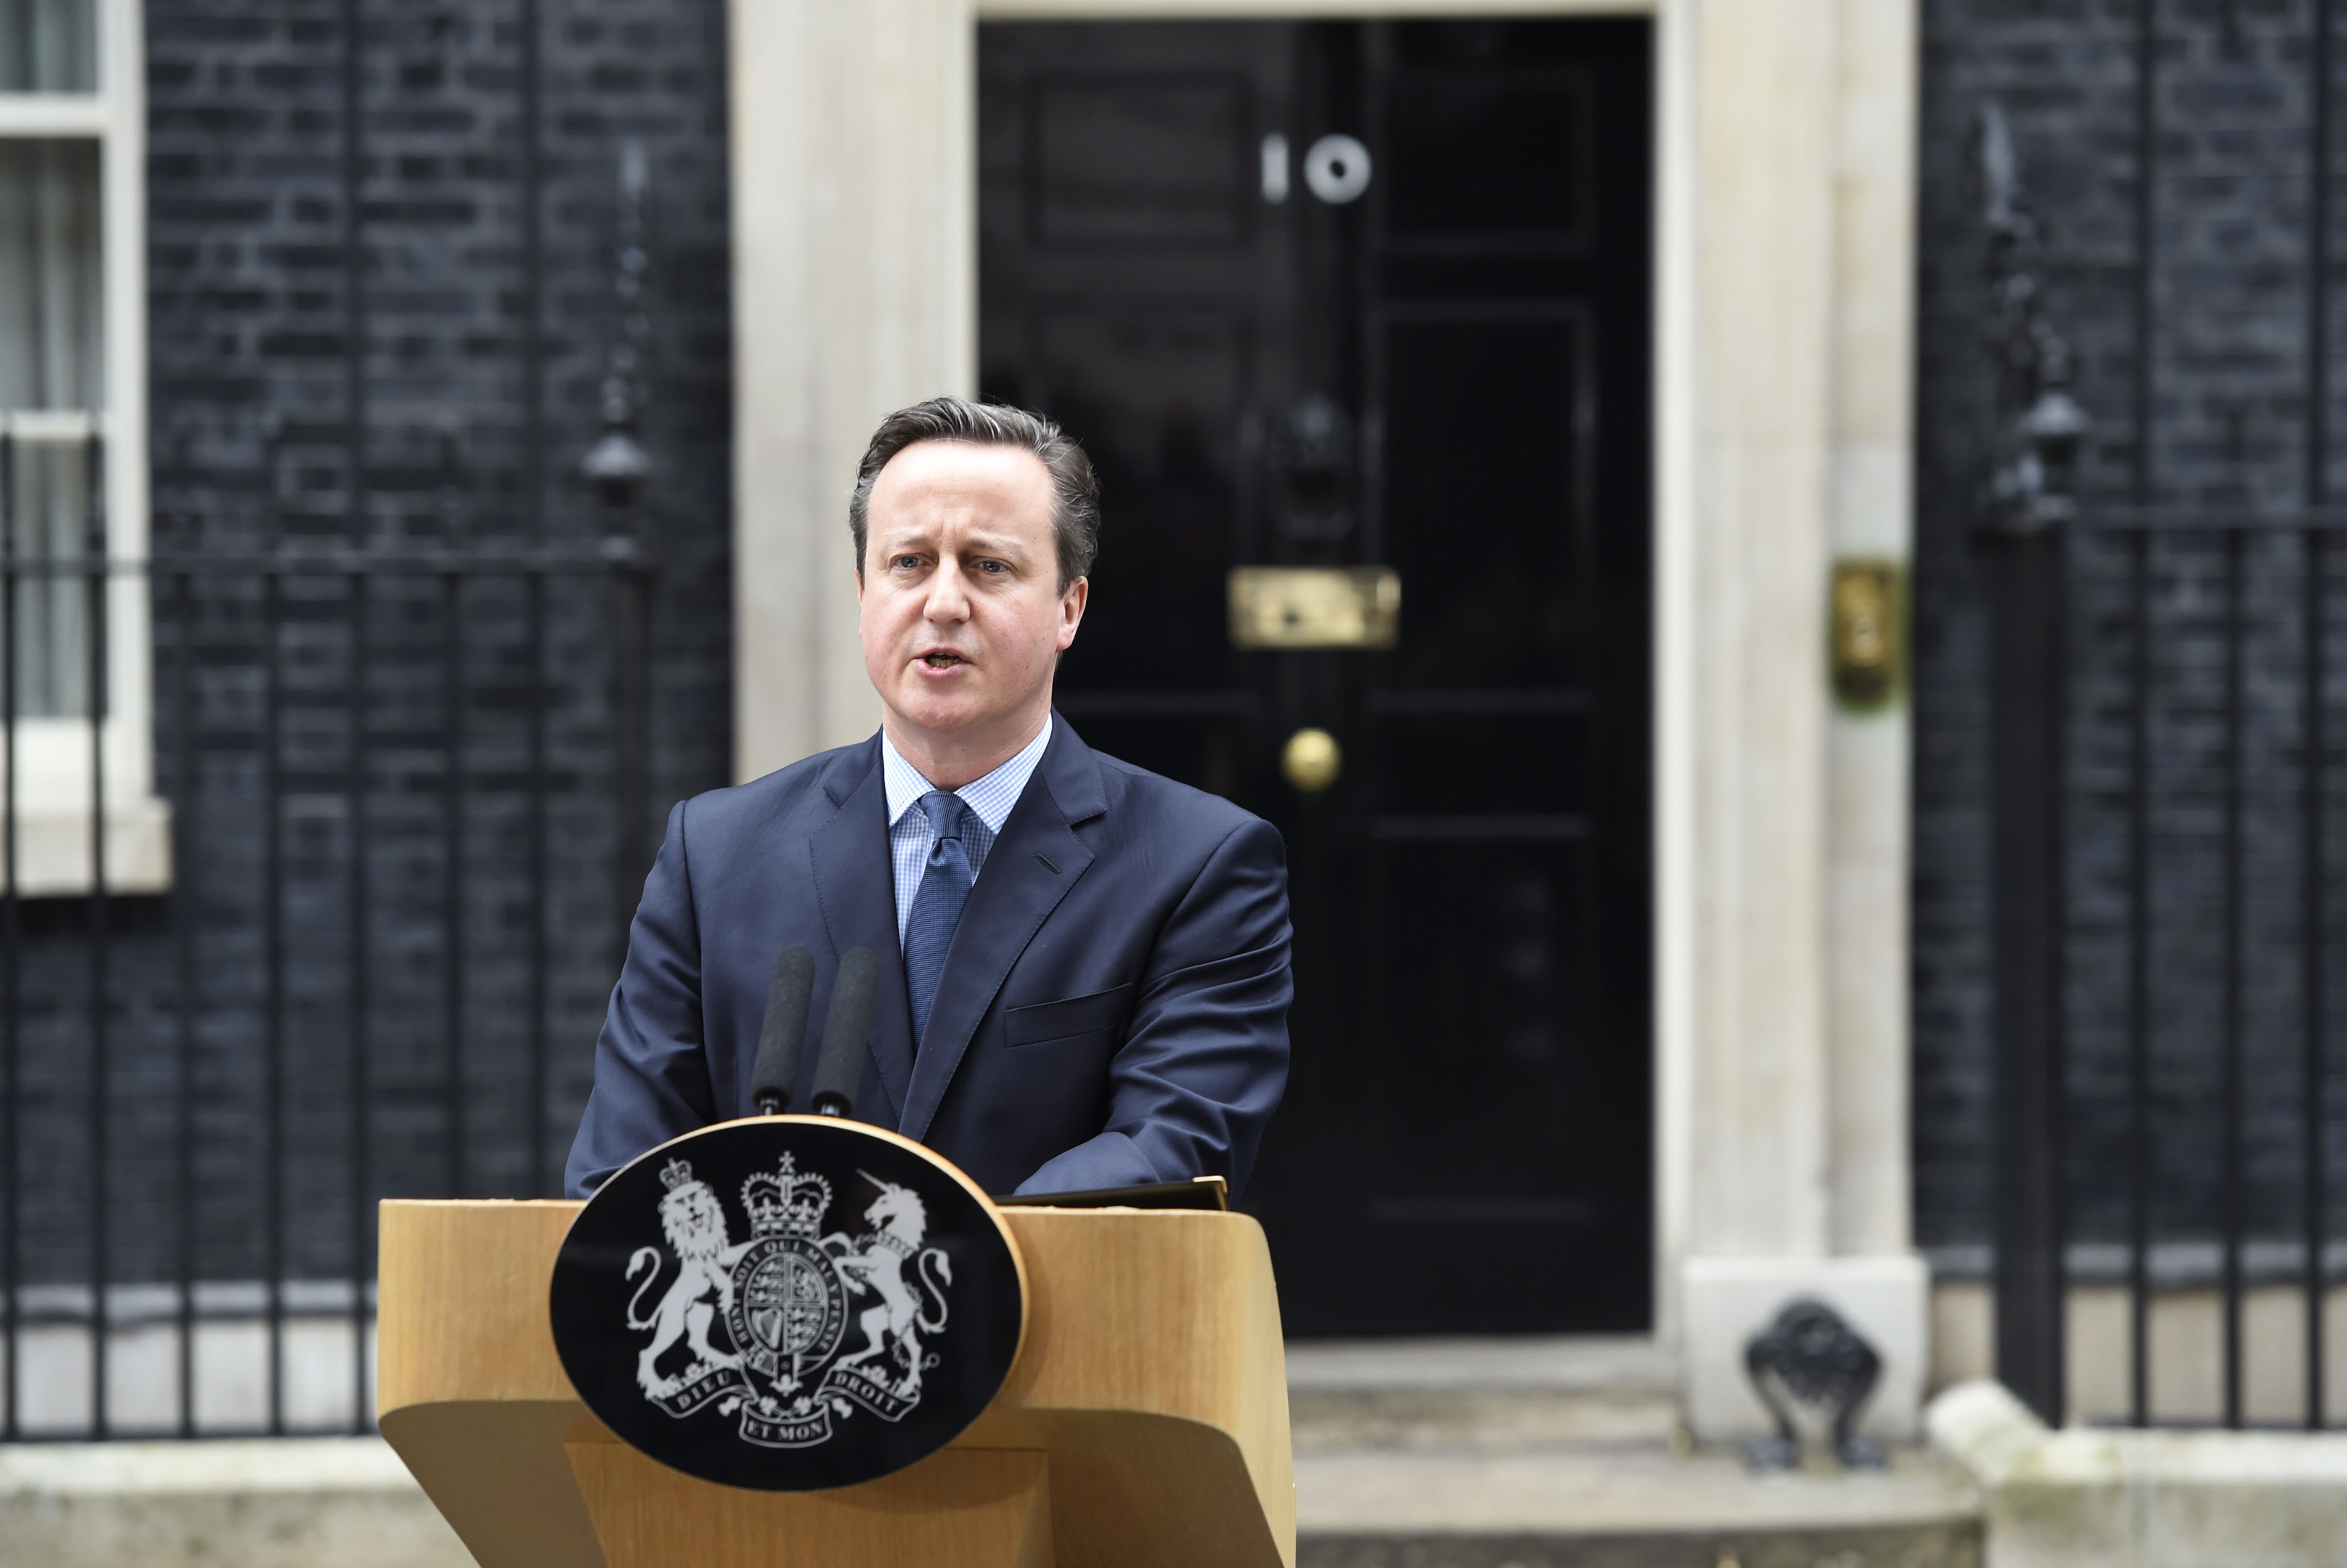 Prime Minister David Cameron (Lauren Hurley/PA Wire)